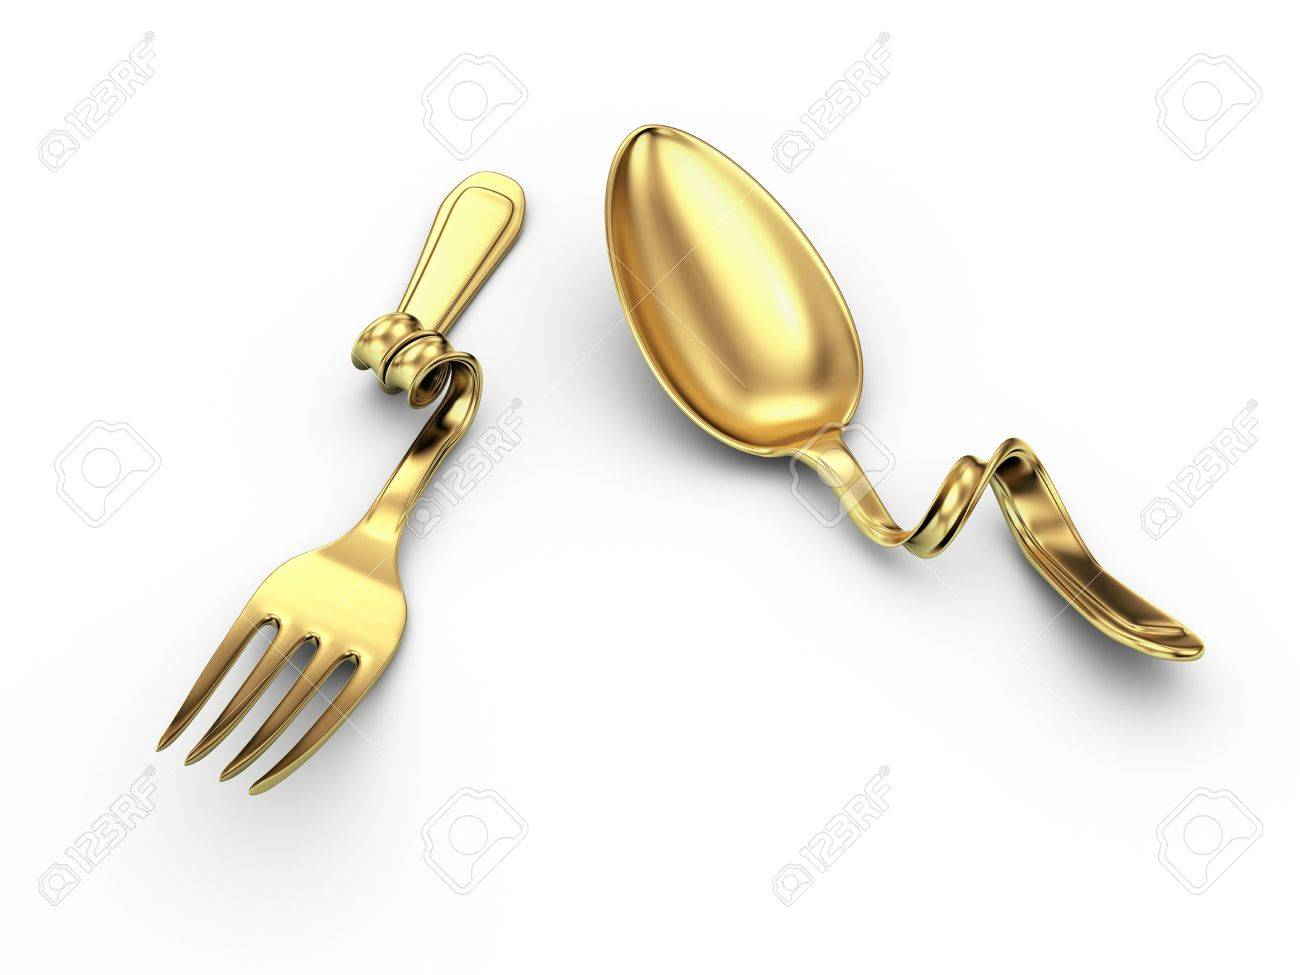 Breakage Gold Kitchenware On White Stock Photo, Picture And Royalty ...